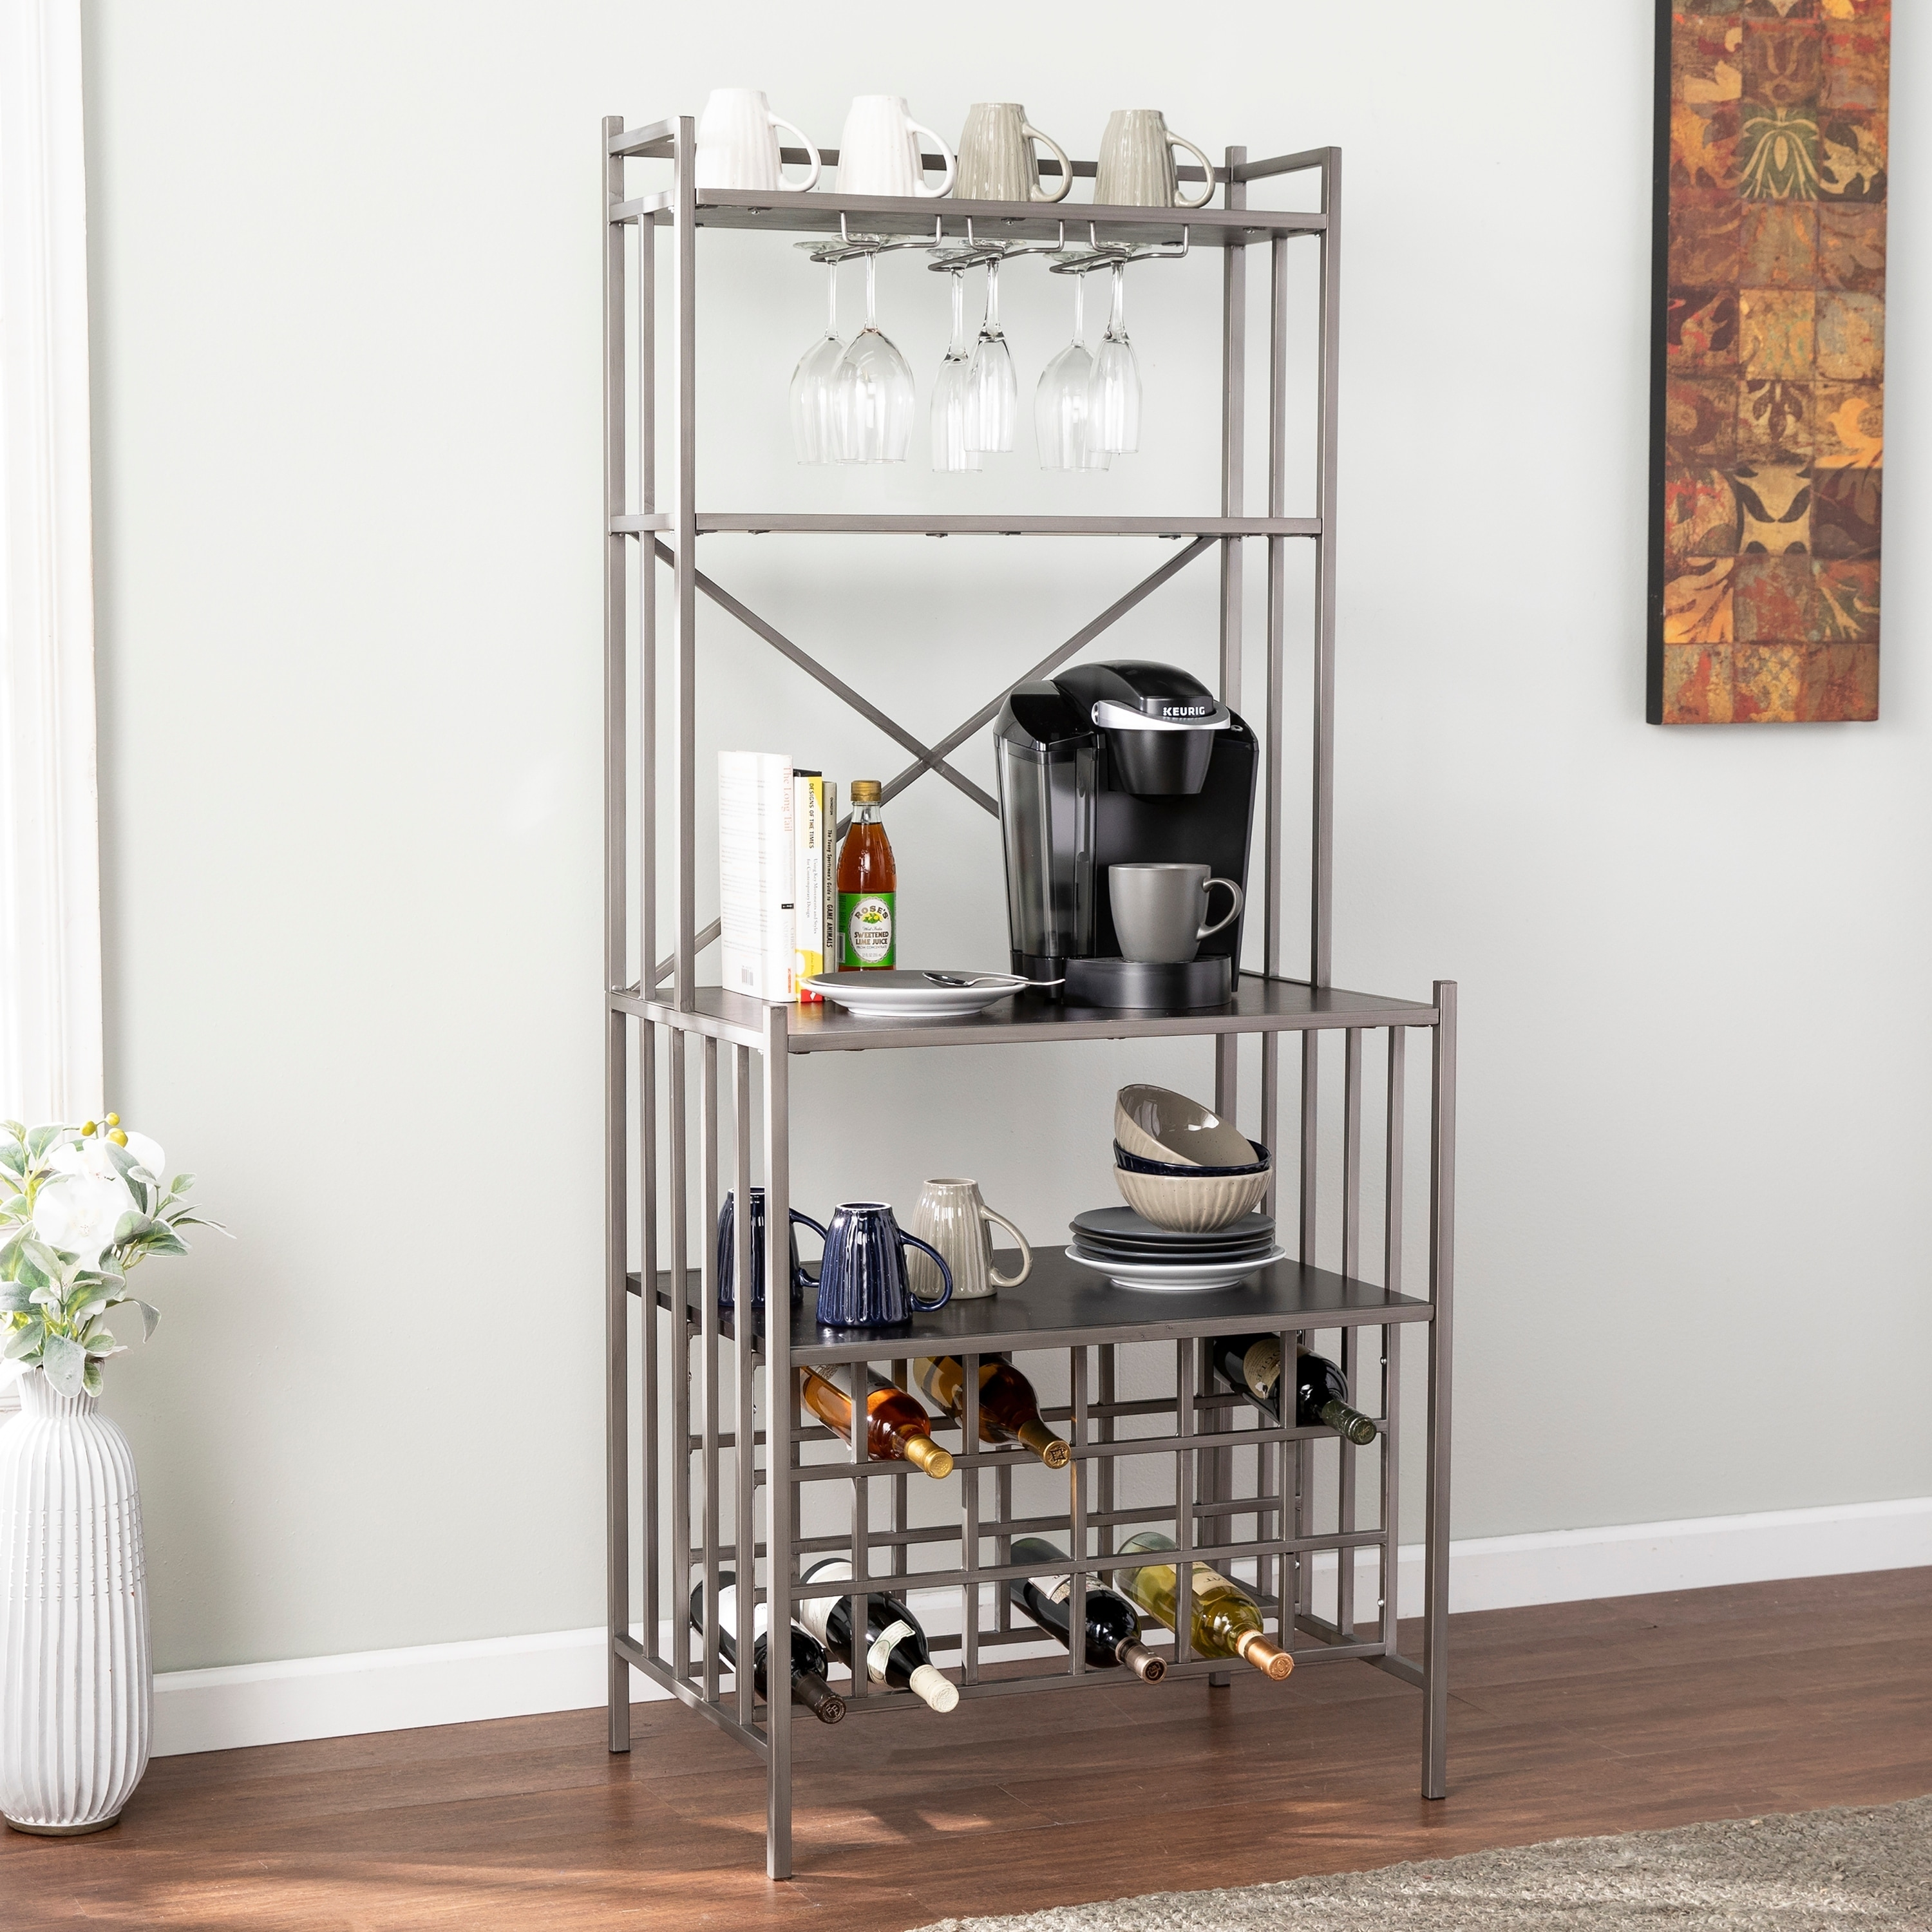 Lucia industrial style bakers rack w shelves and wine storage